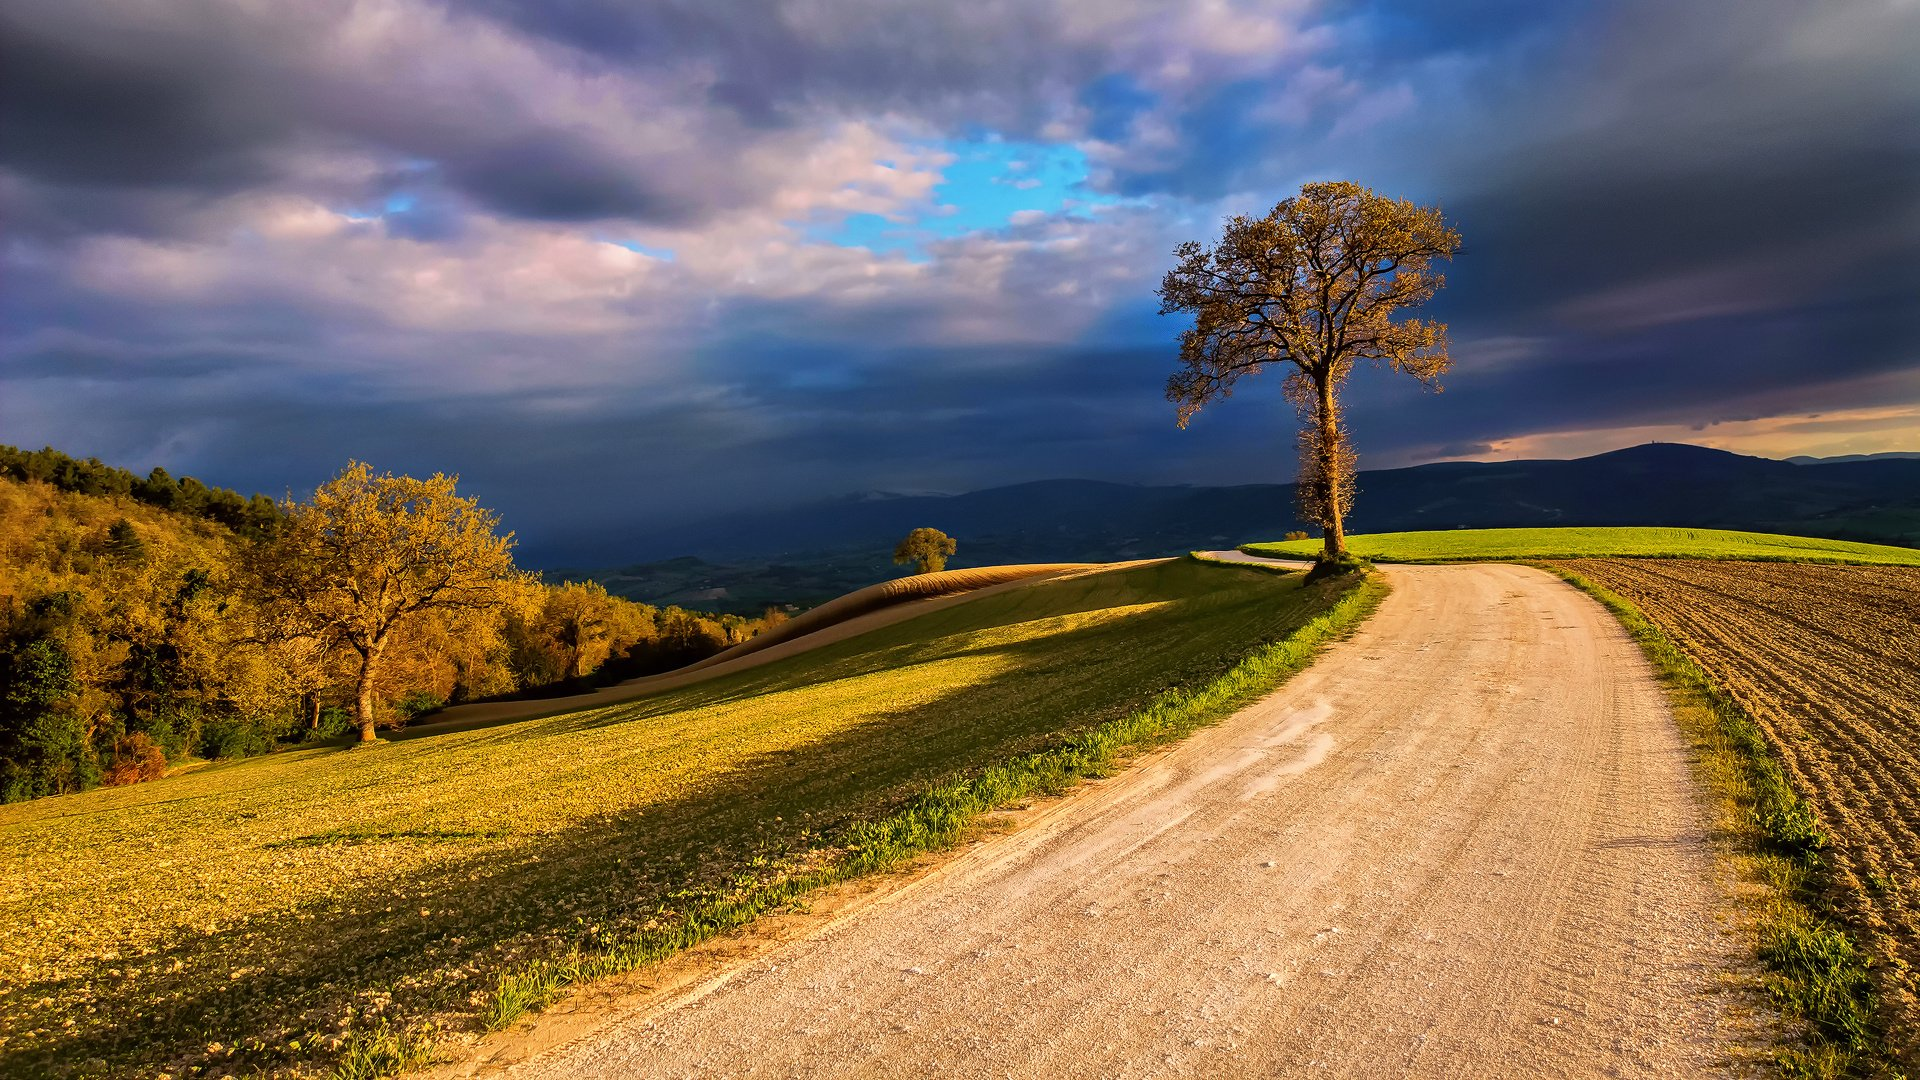 Dirt Road In The Country HD Wallpaper Background Image